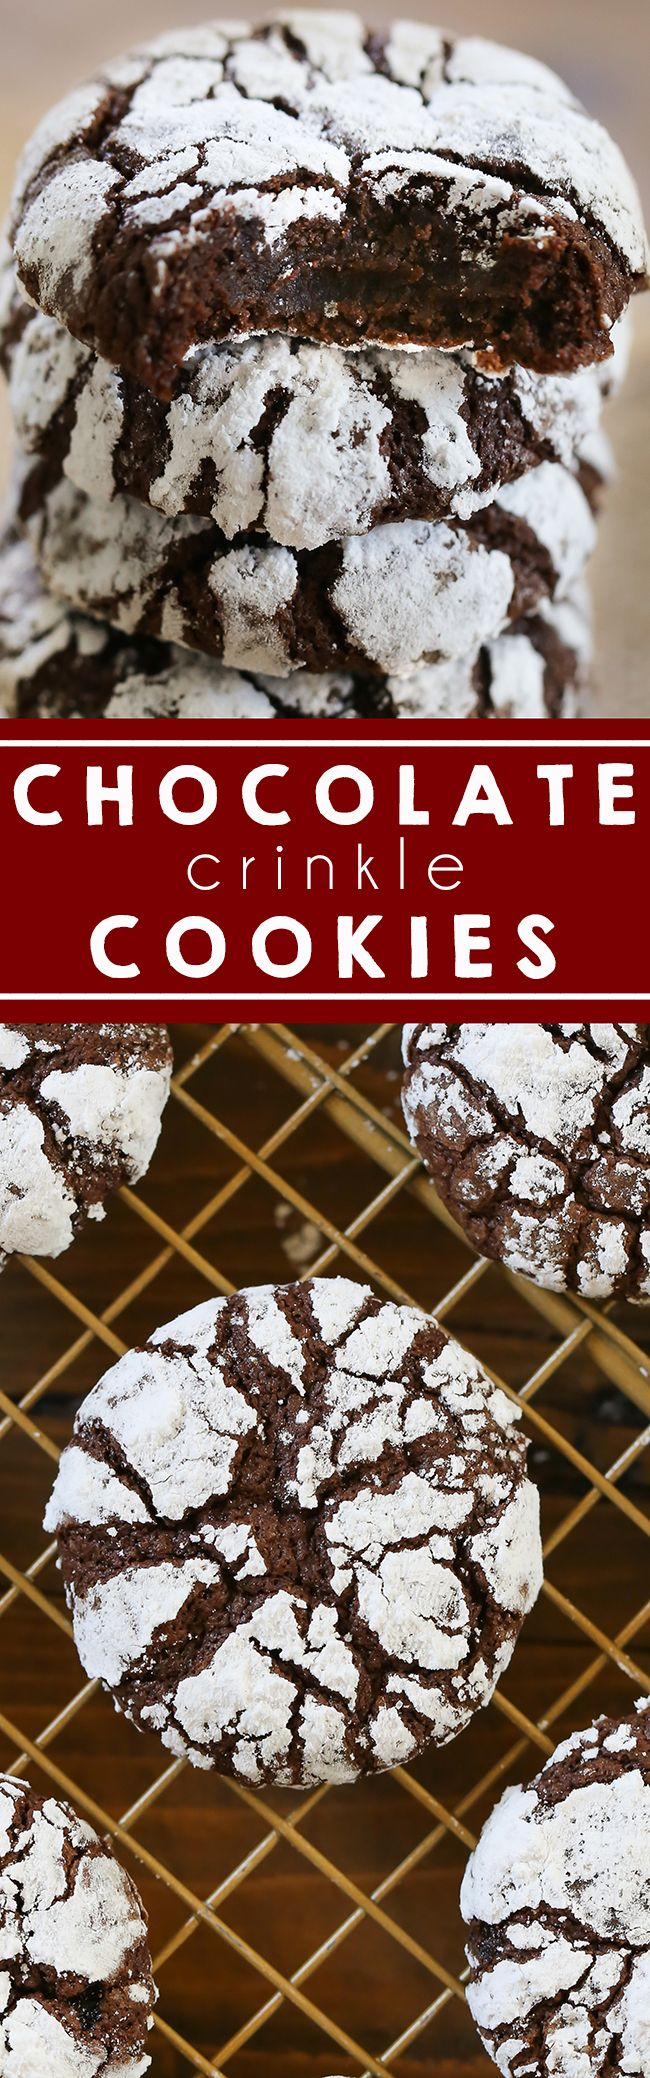 Chocolate Crinkle Cookies - Swanky Recipes - Chewy Fudge like cookies that will melt in your mouth. Perfect for the Christmas holiday season and baking. #holidaybaking #christmascookies #chocolate